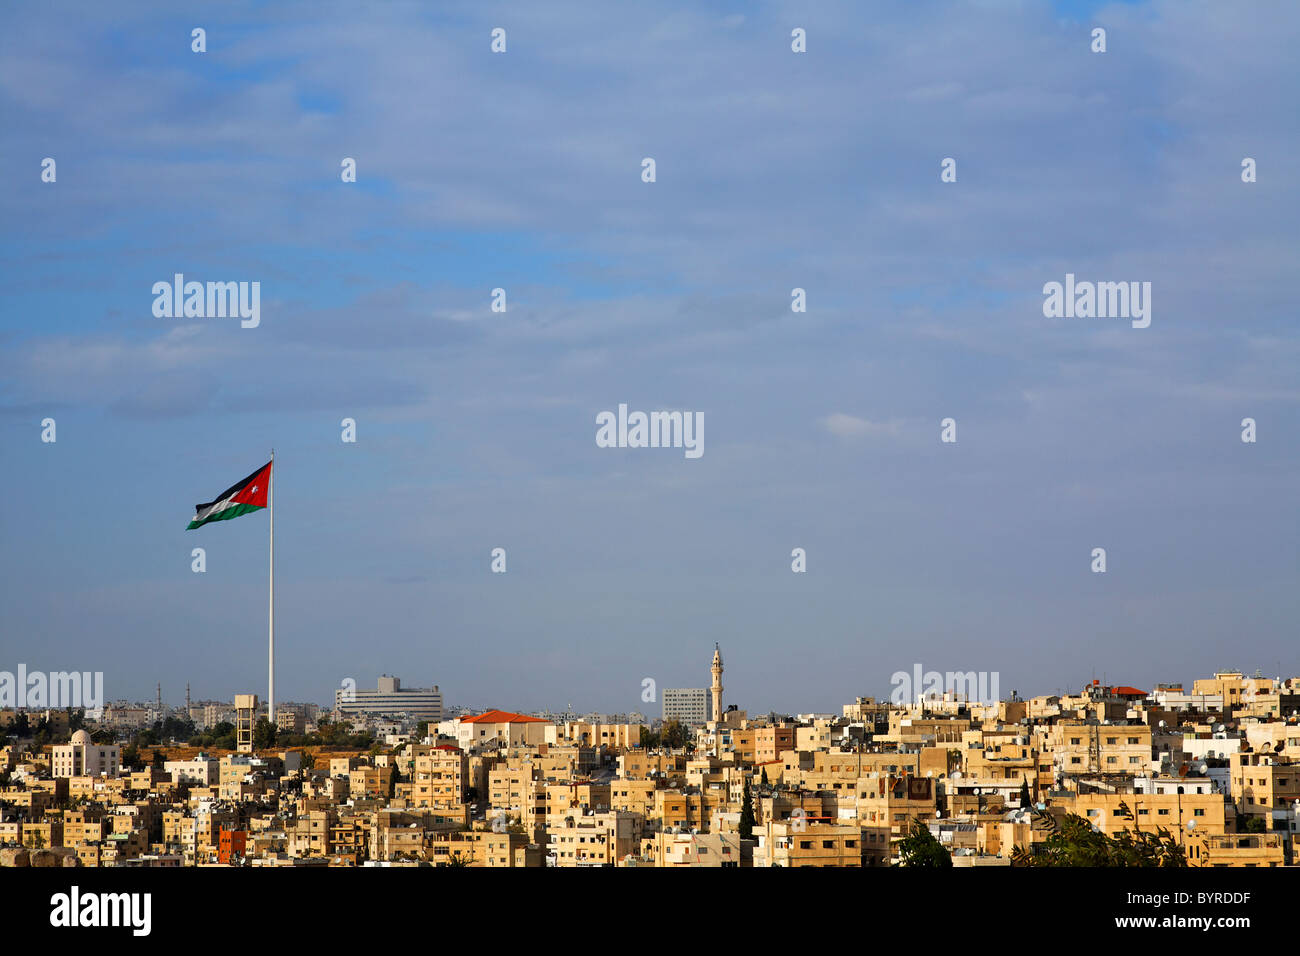 Grand drapeau jordanien survolant la ville d'Amman, Jordanie Photo Stock